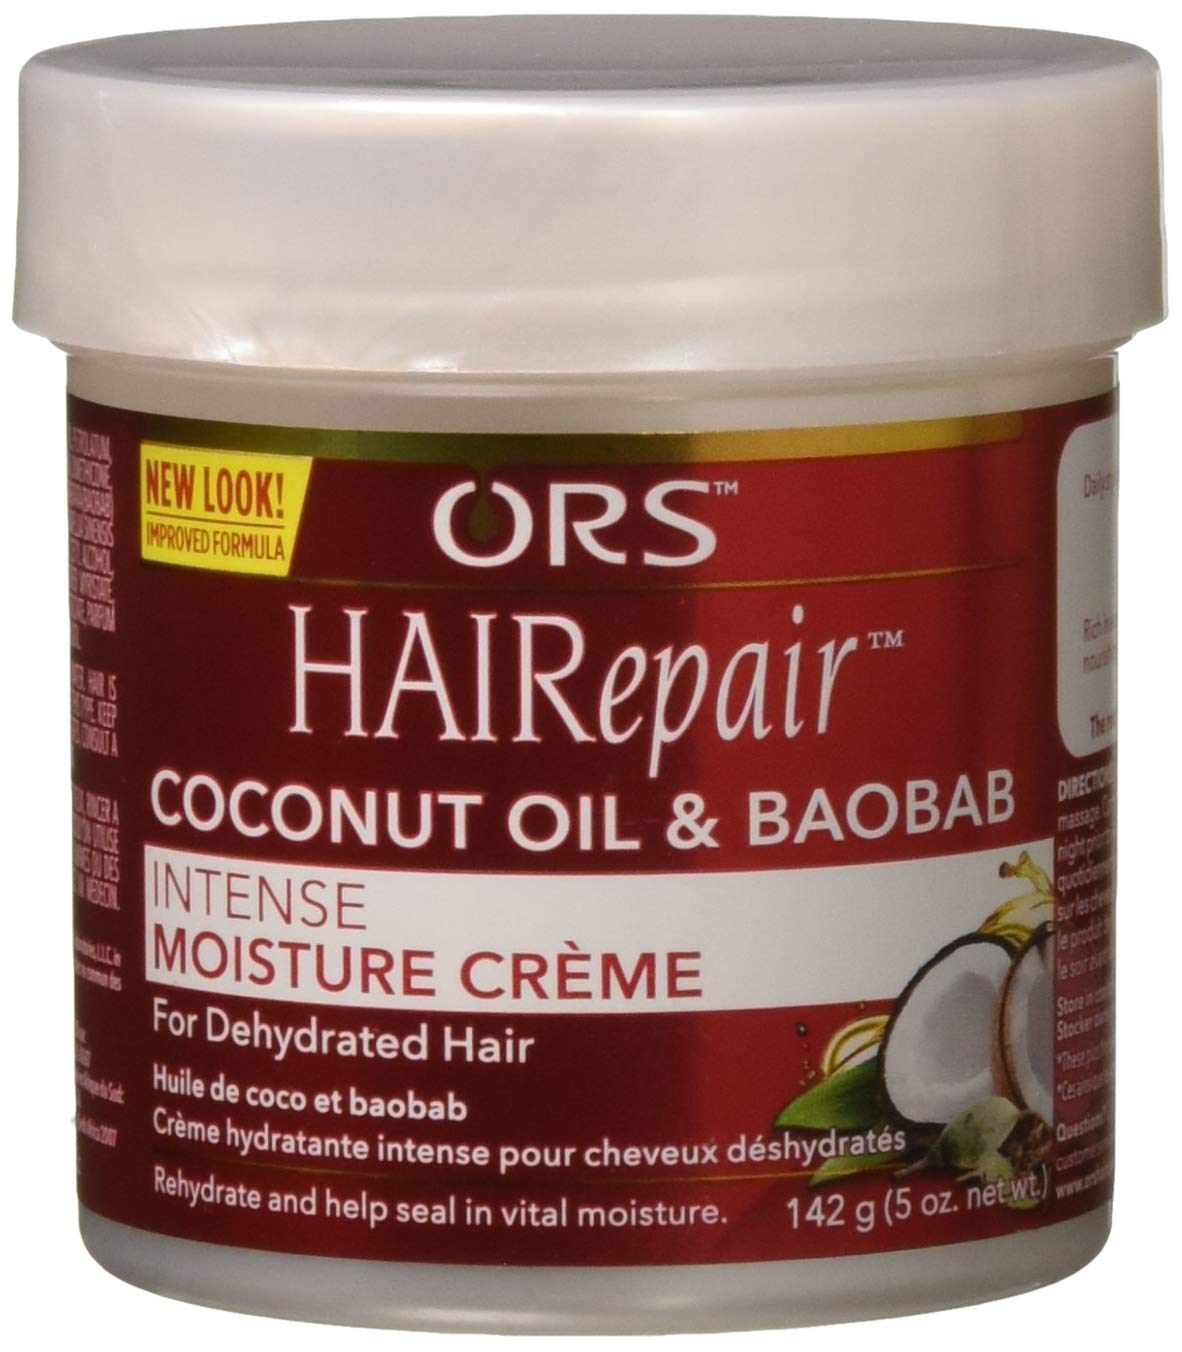 ORGANIC ROOT Stimulator Hairepair Intense Moisture Creme, 5 oz. 11008